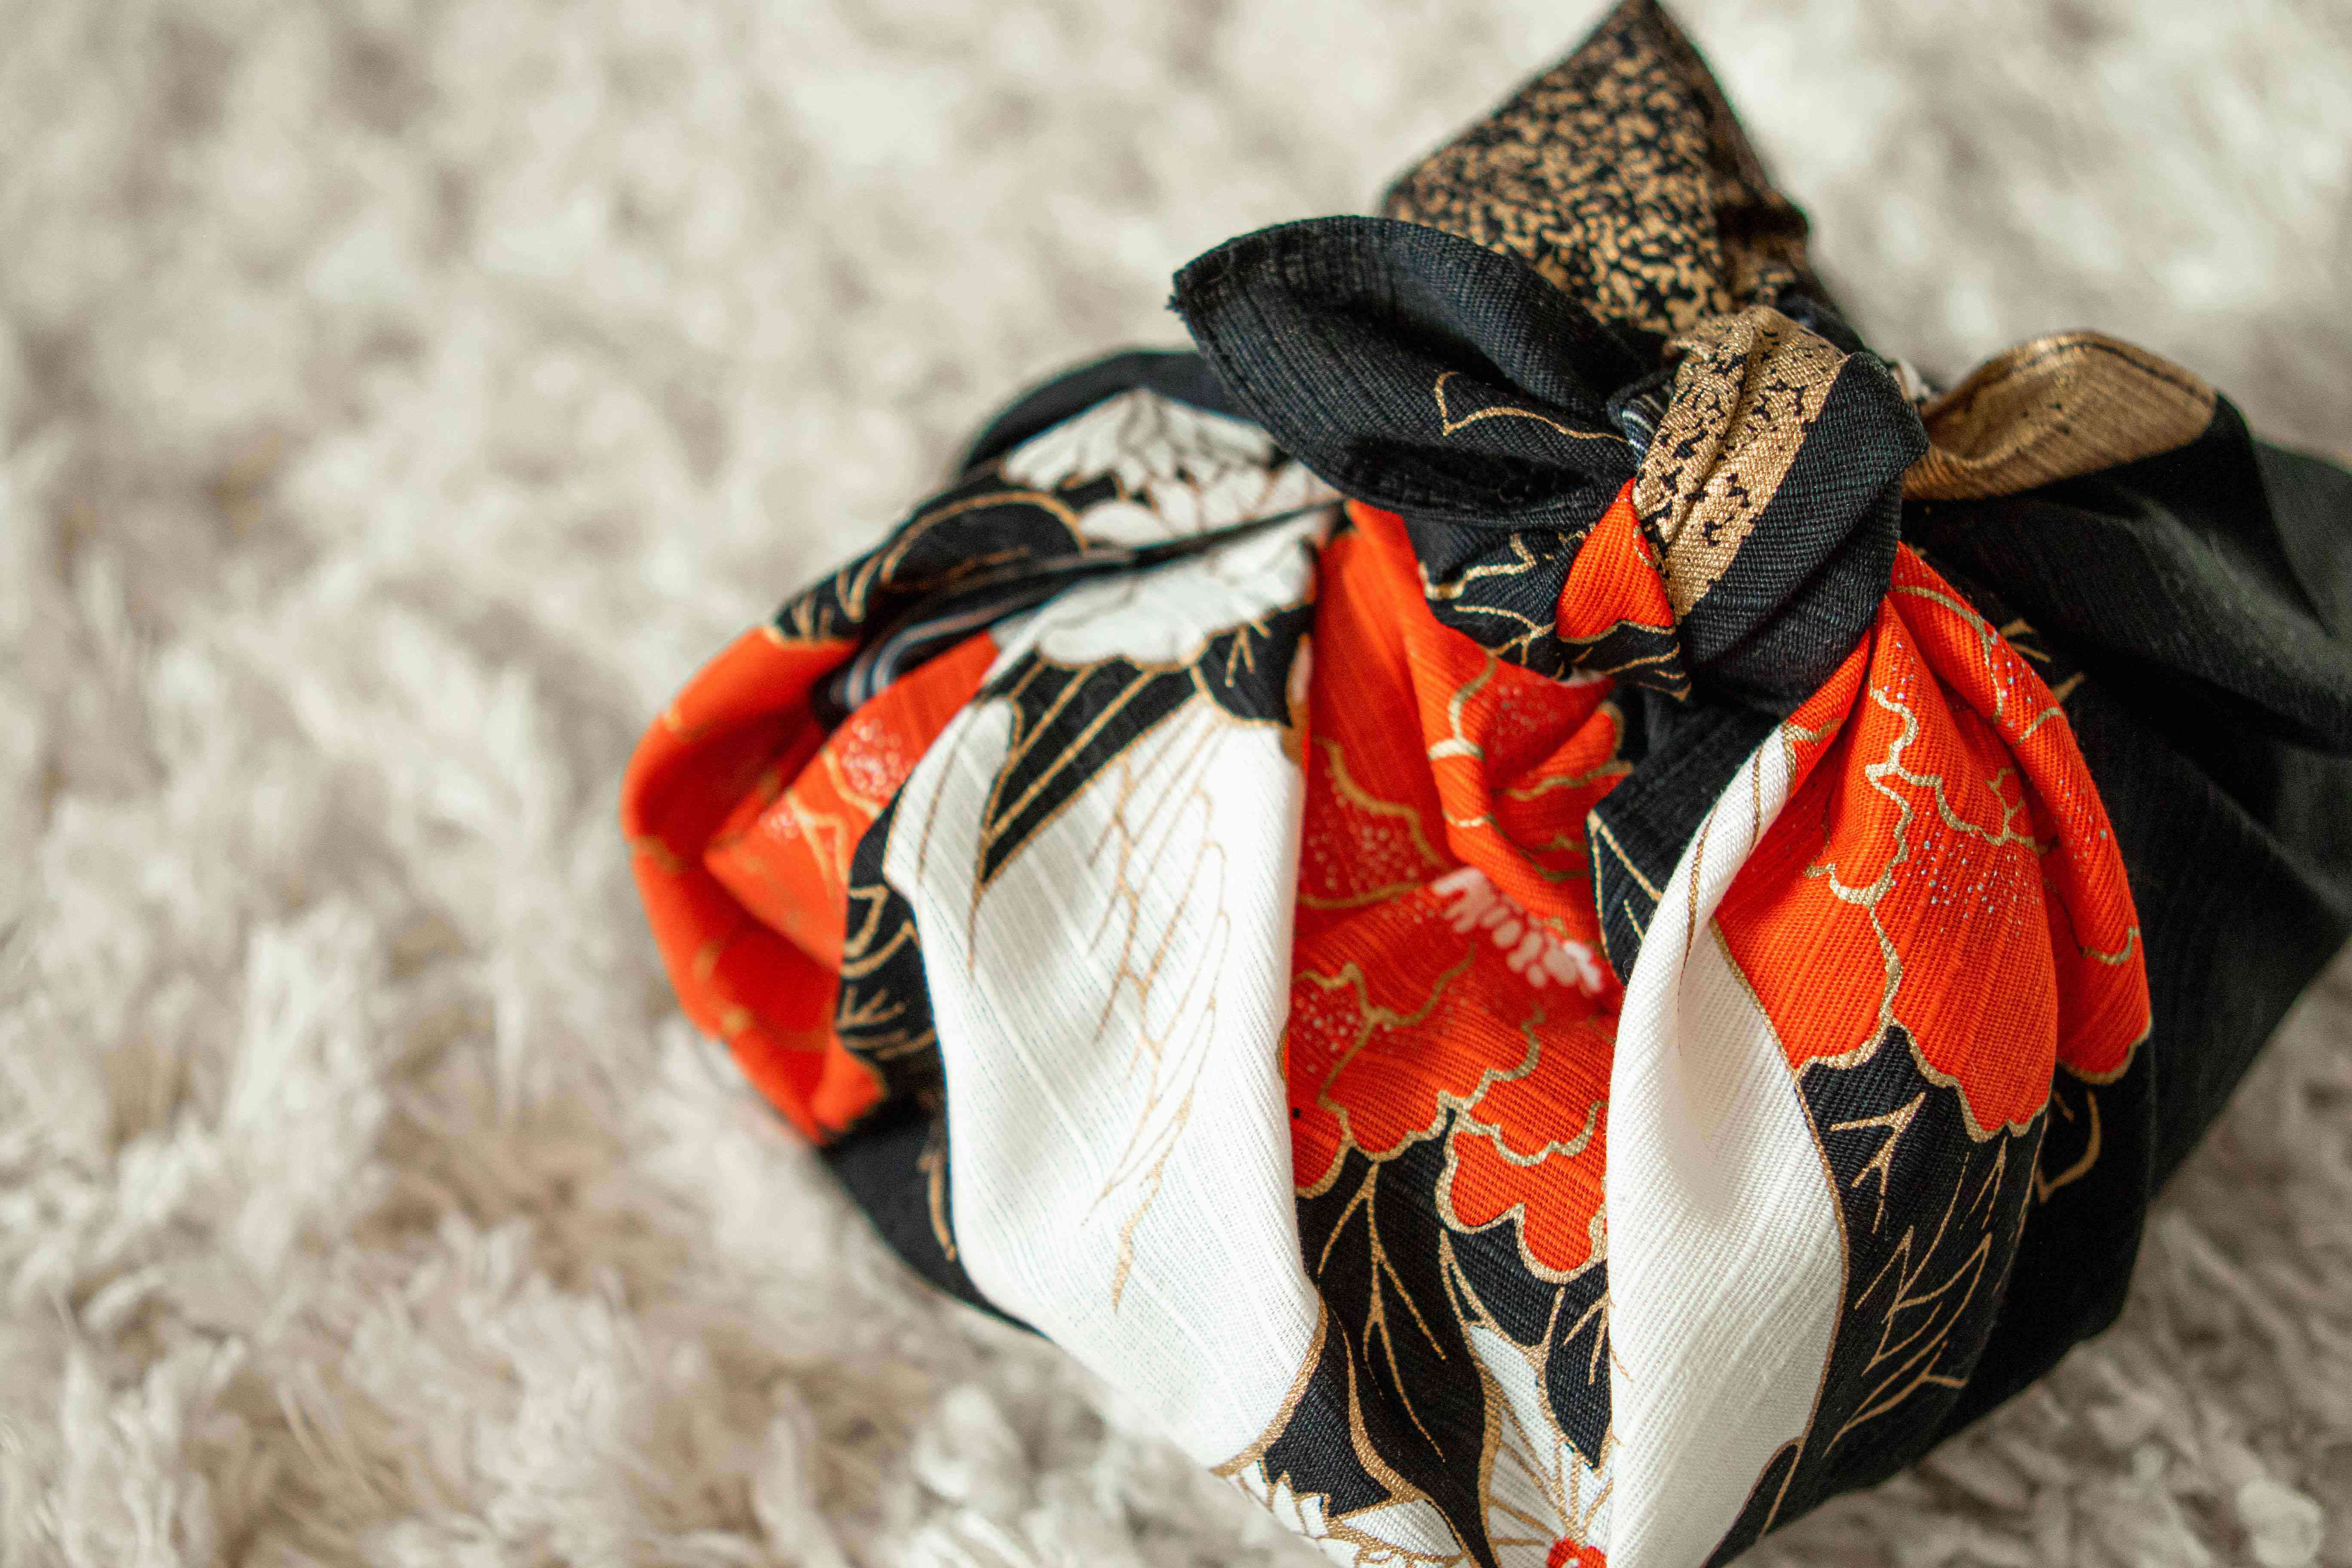 gift box is wrapped with colorful fabric using the Japanese furoshiki method